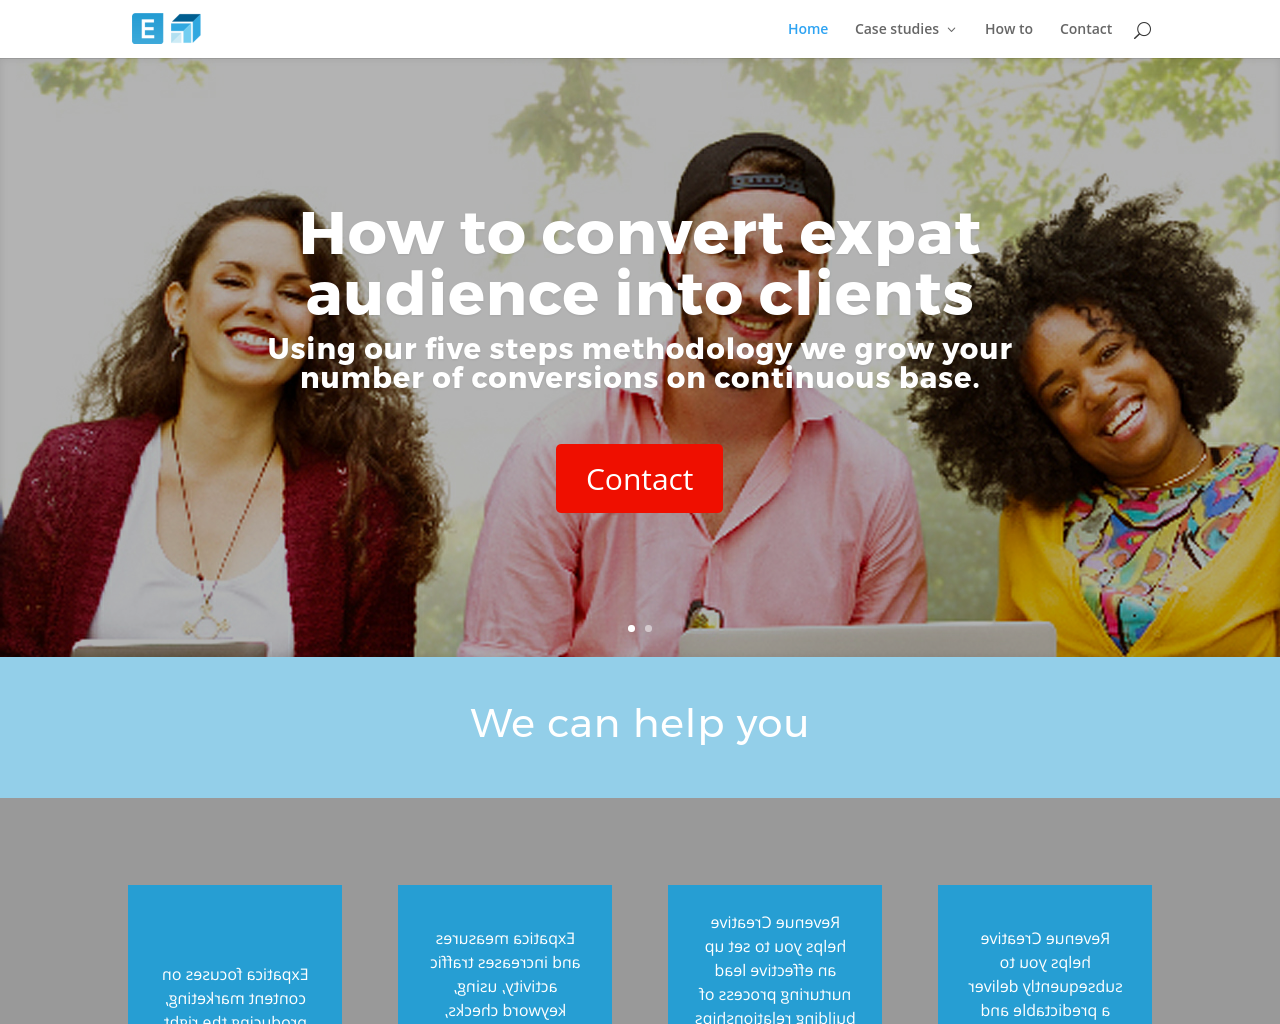 Expatica-Advertising-Network-Advertising-Reviews-Pricing